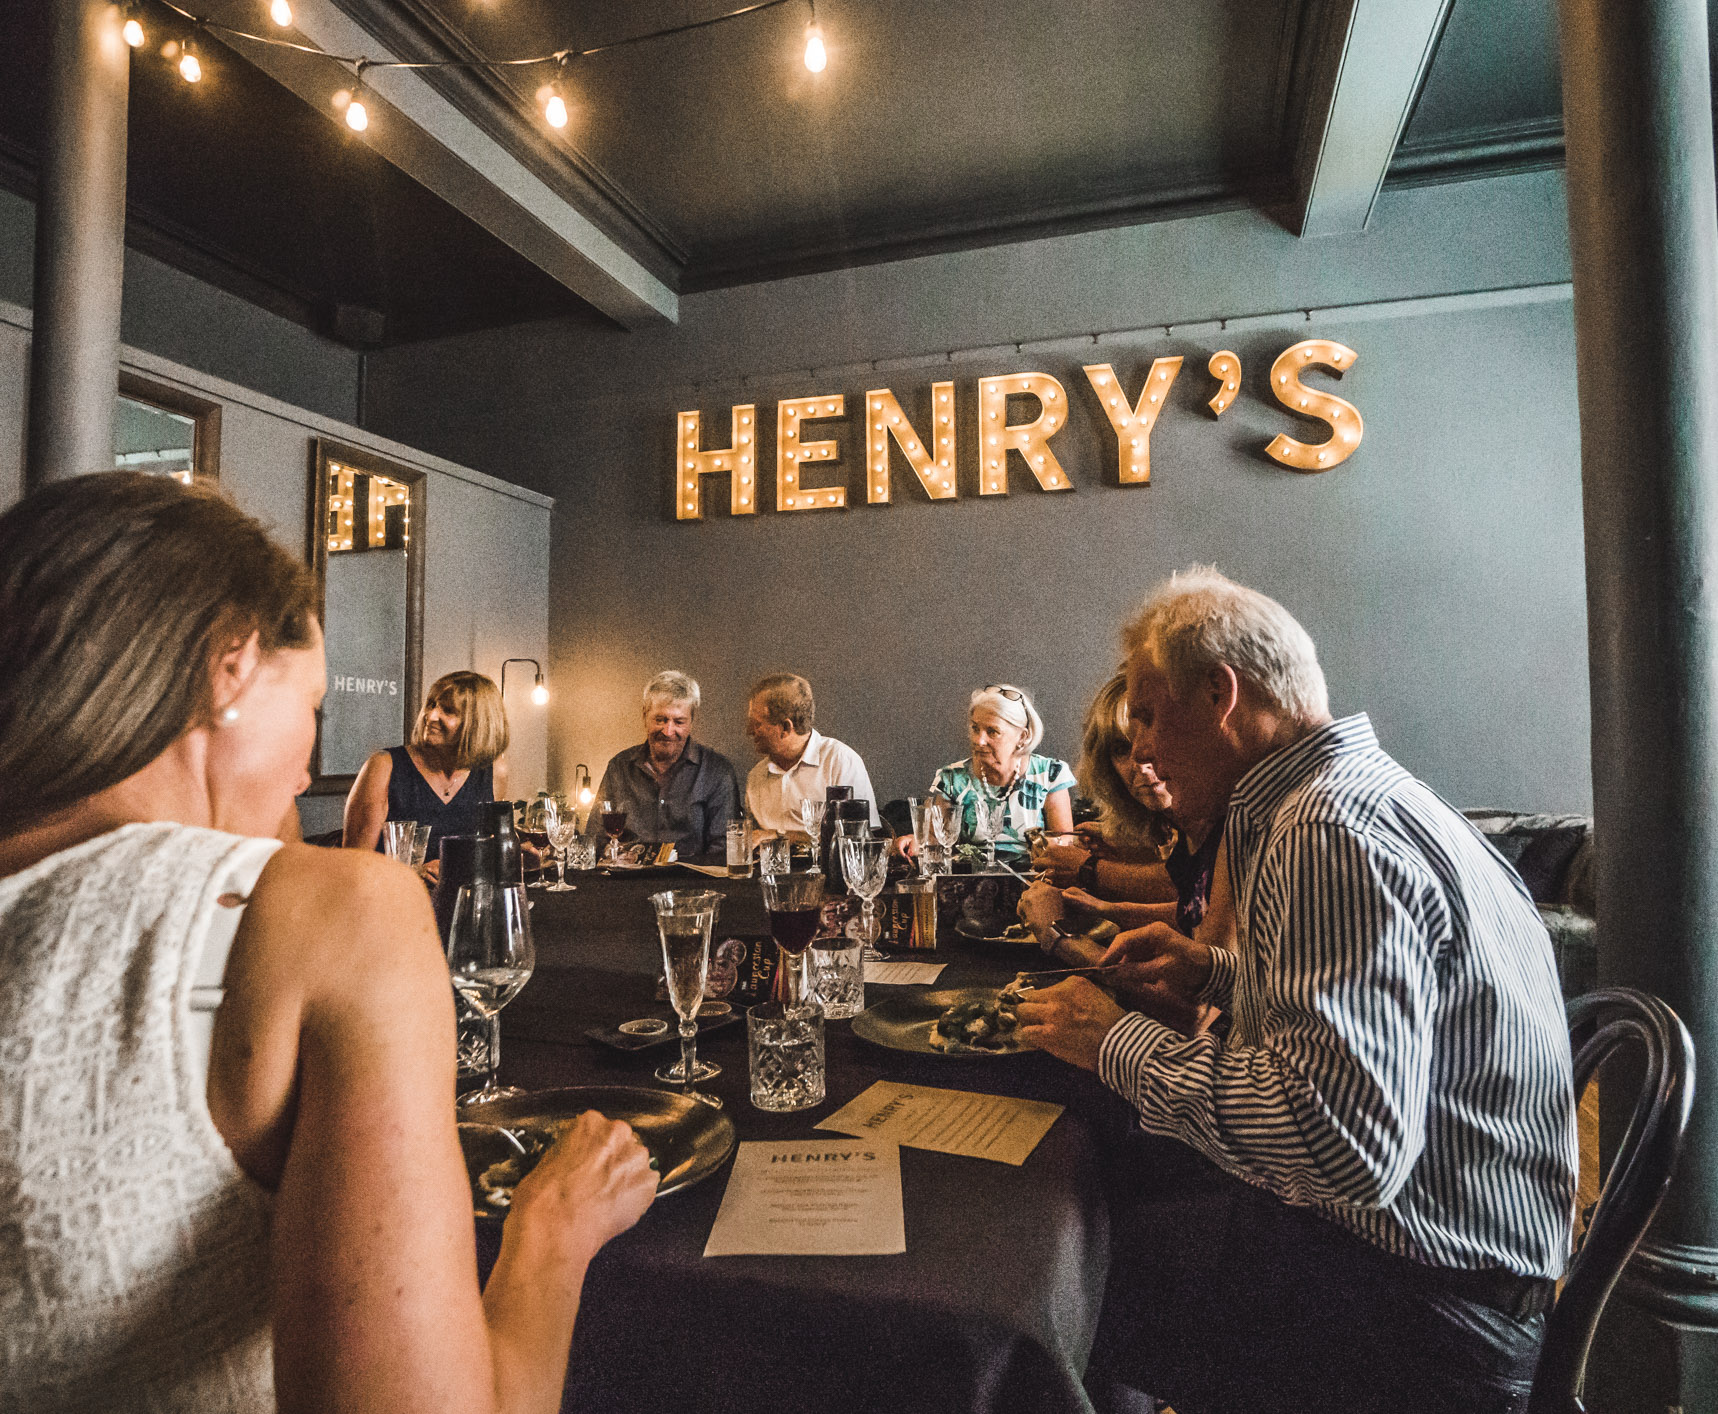 Henrys (Web) (8 of 10).jpg